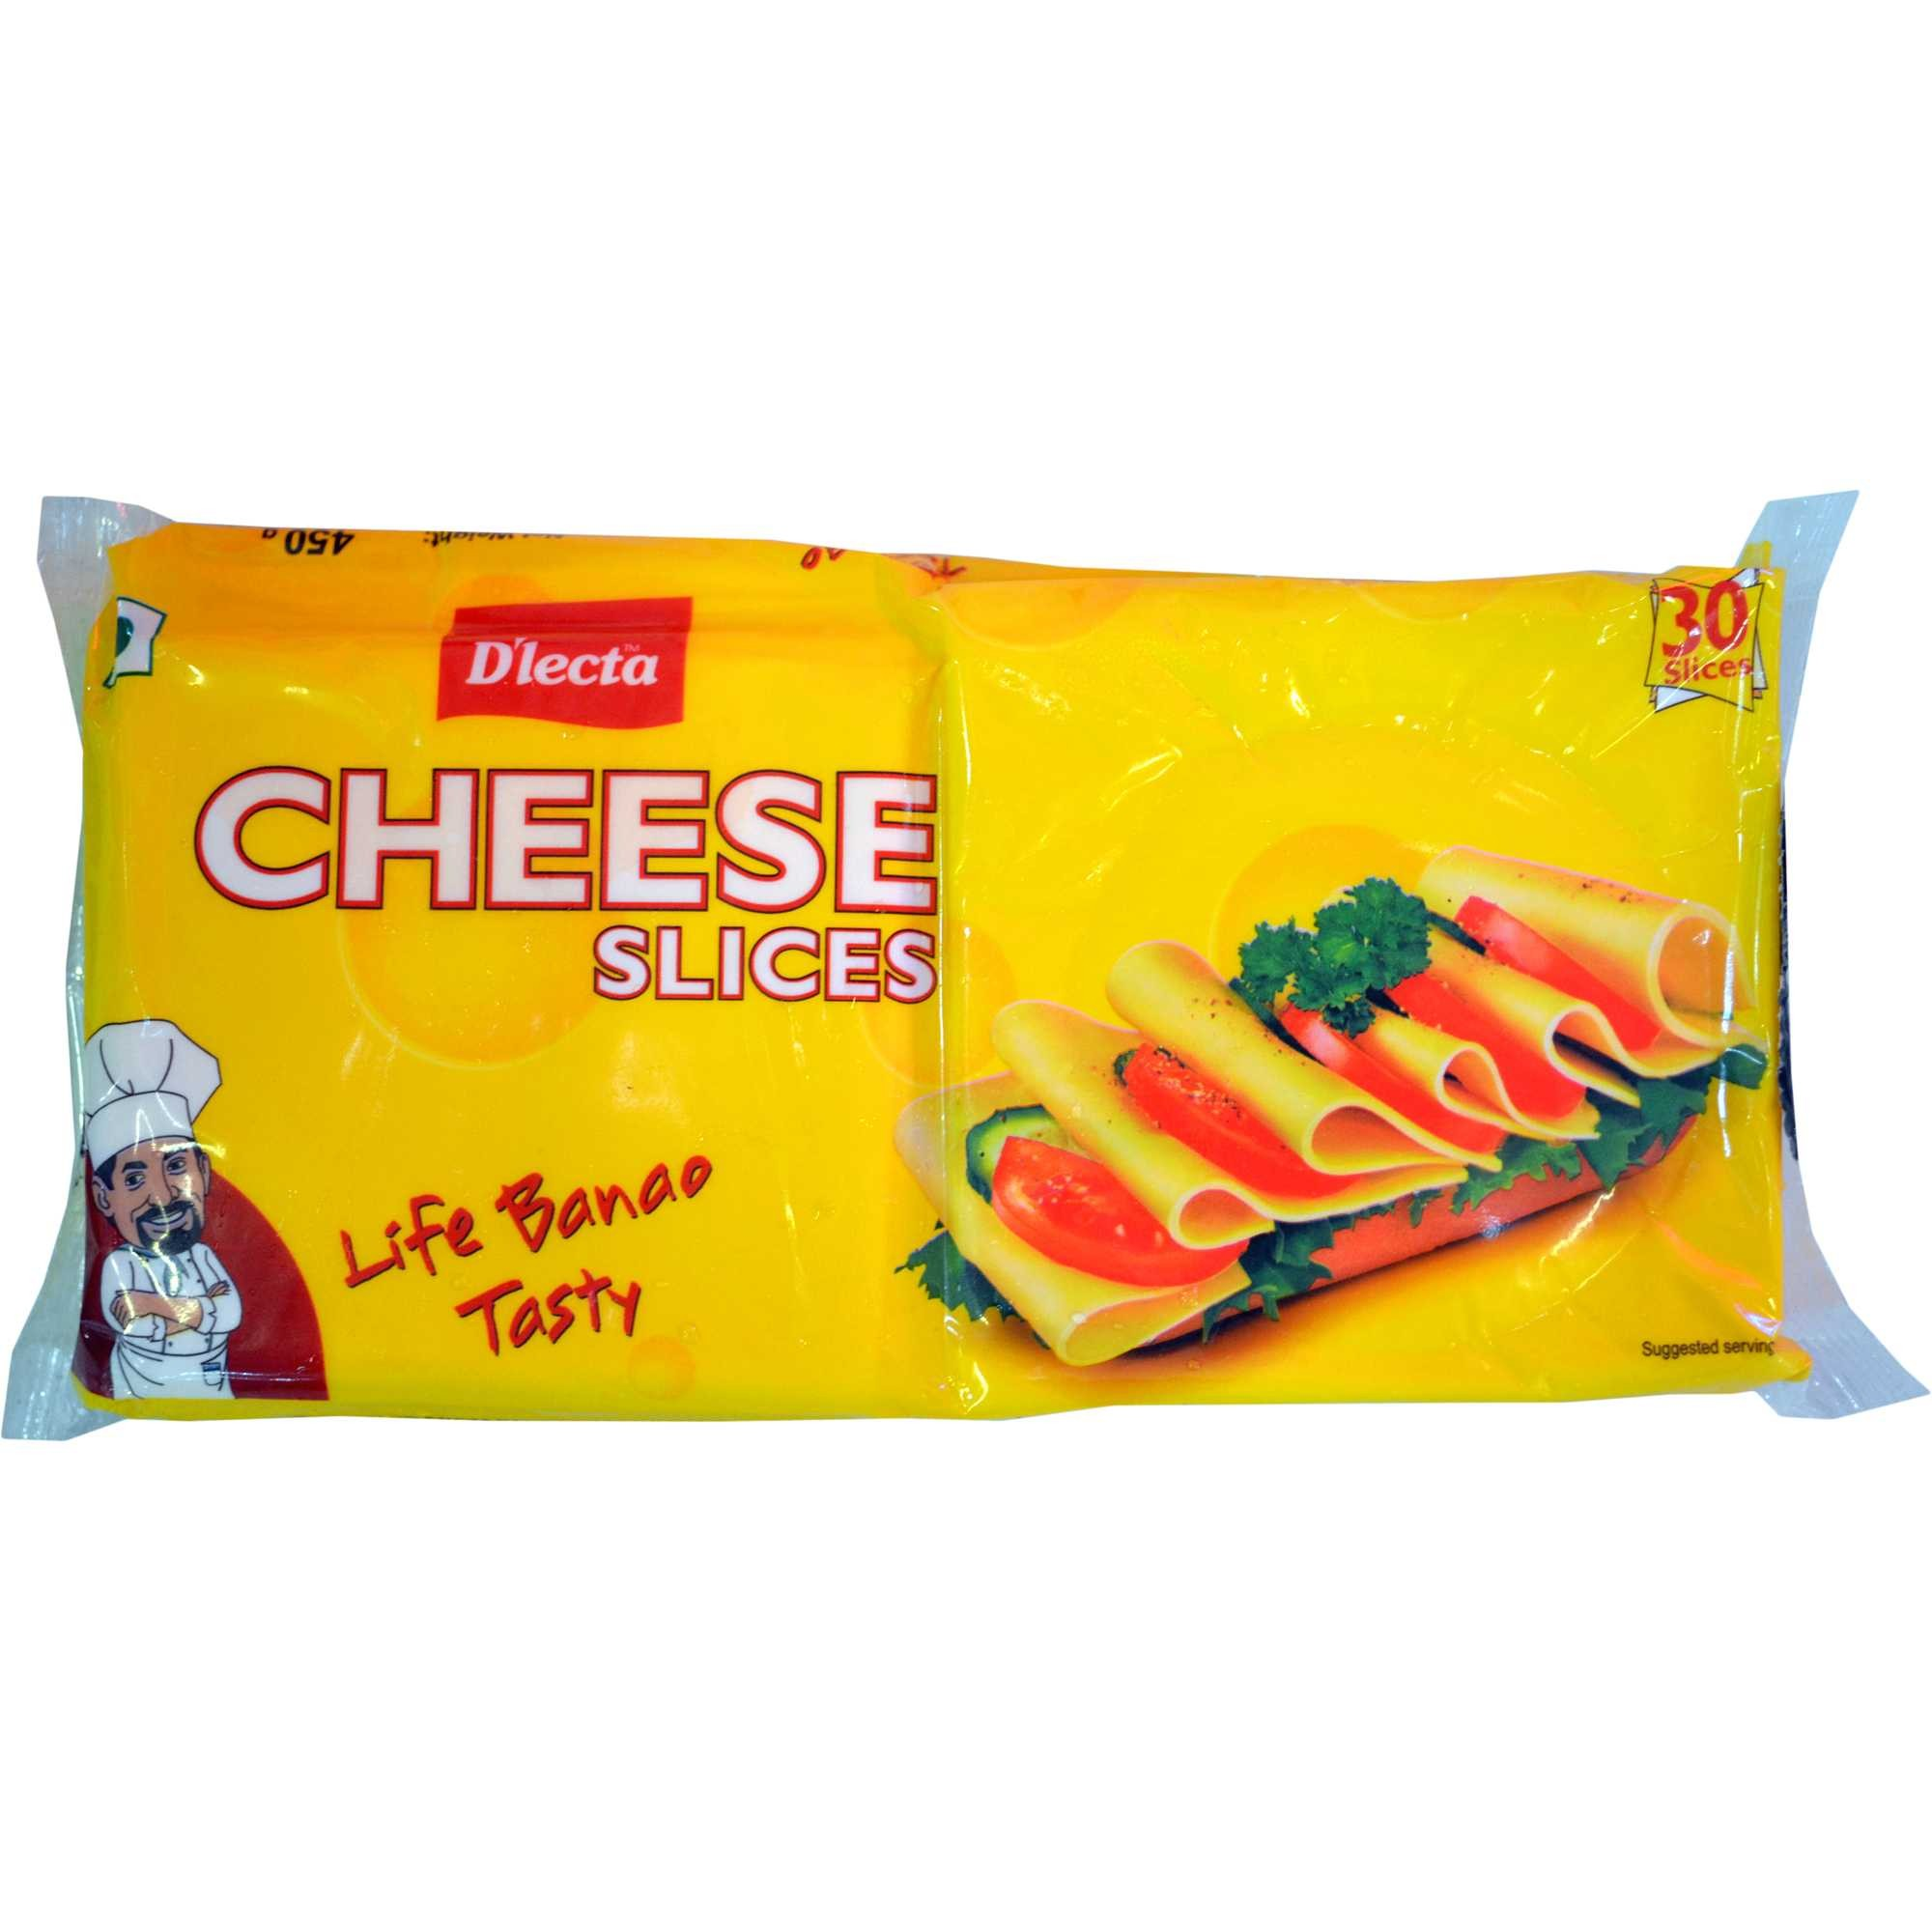 D'Lecta Cheese Slices Image